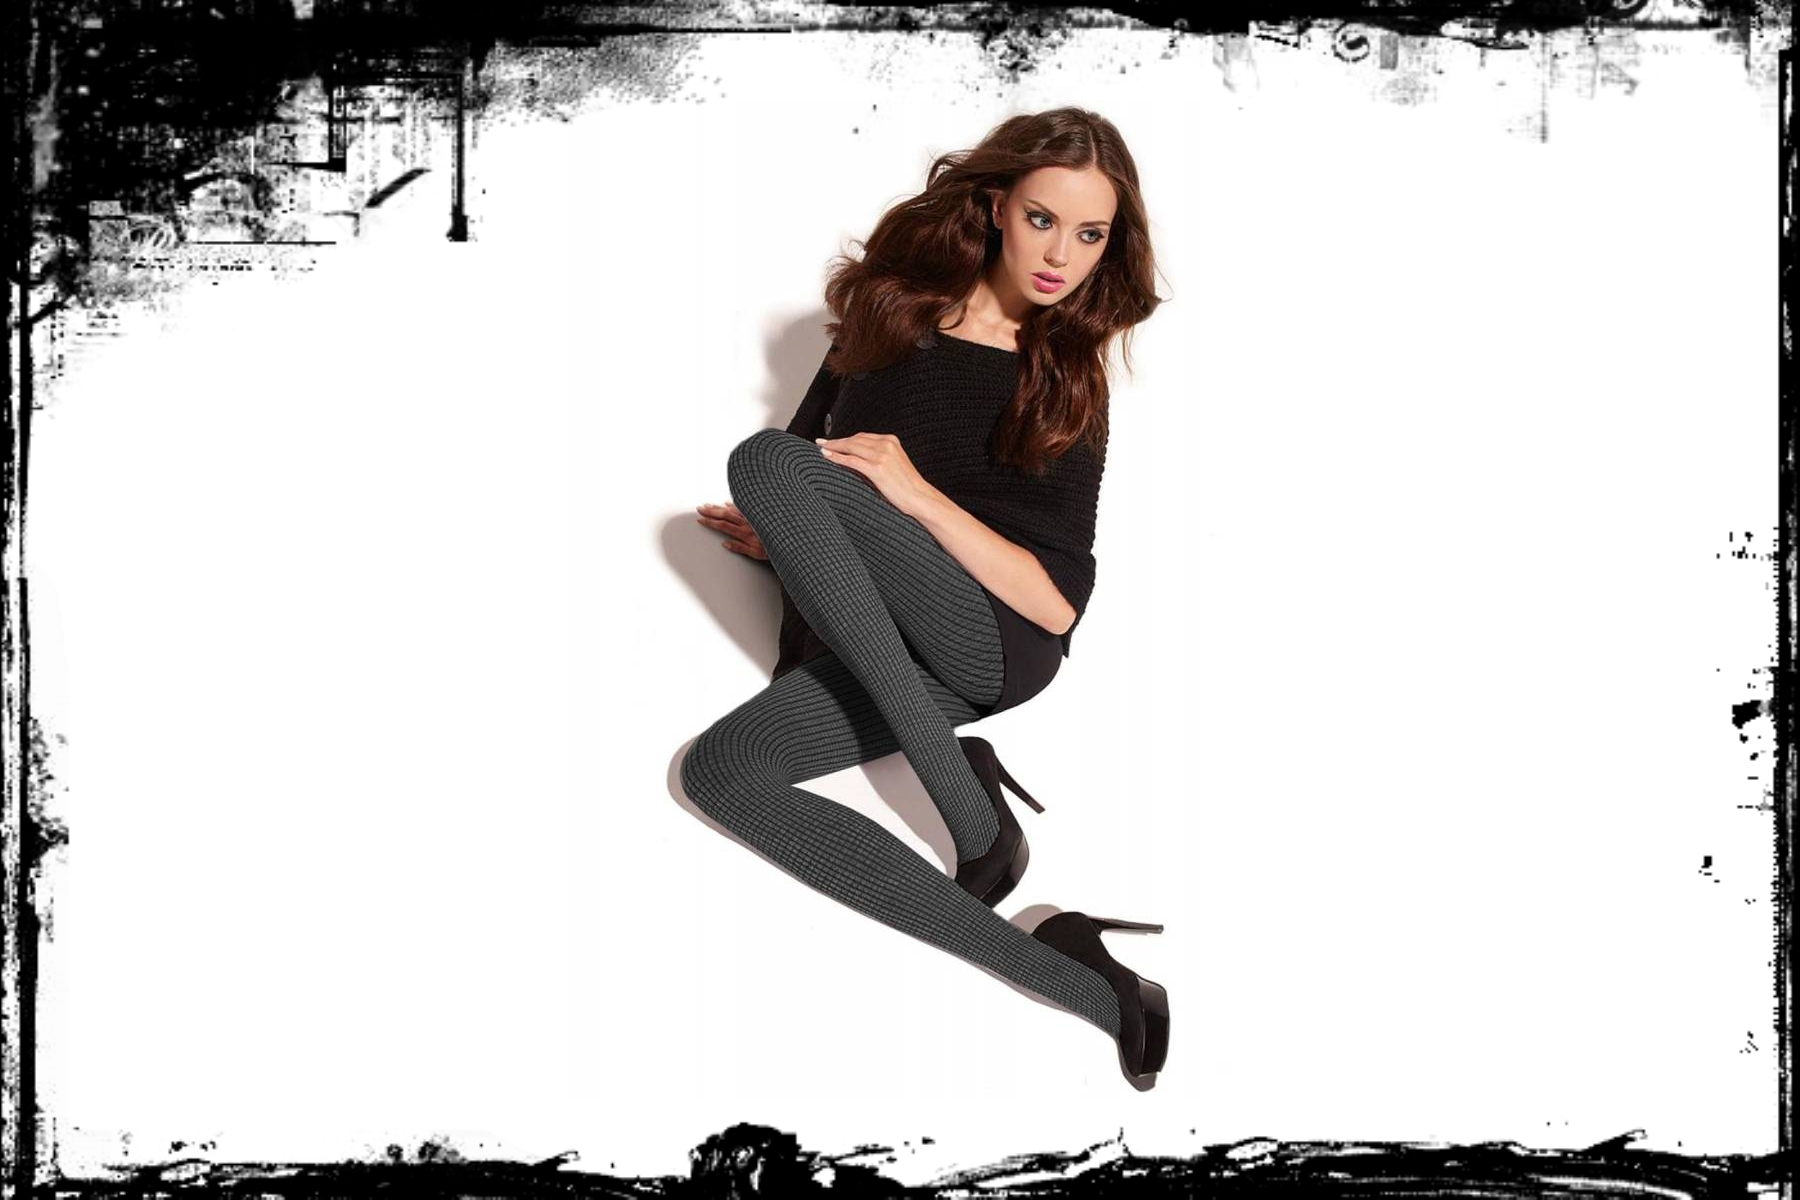 UP&GO tights – the perfect choice for chilly winter days.